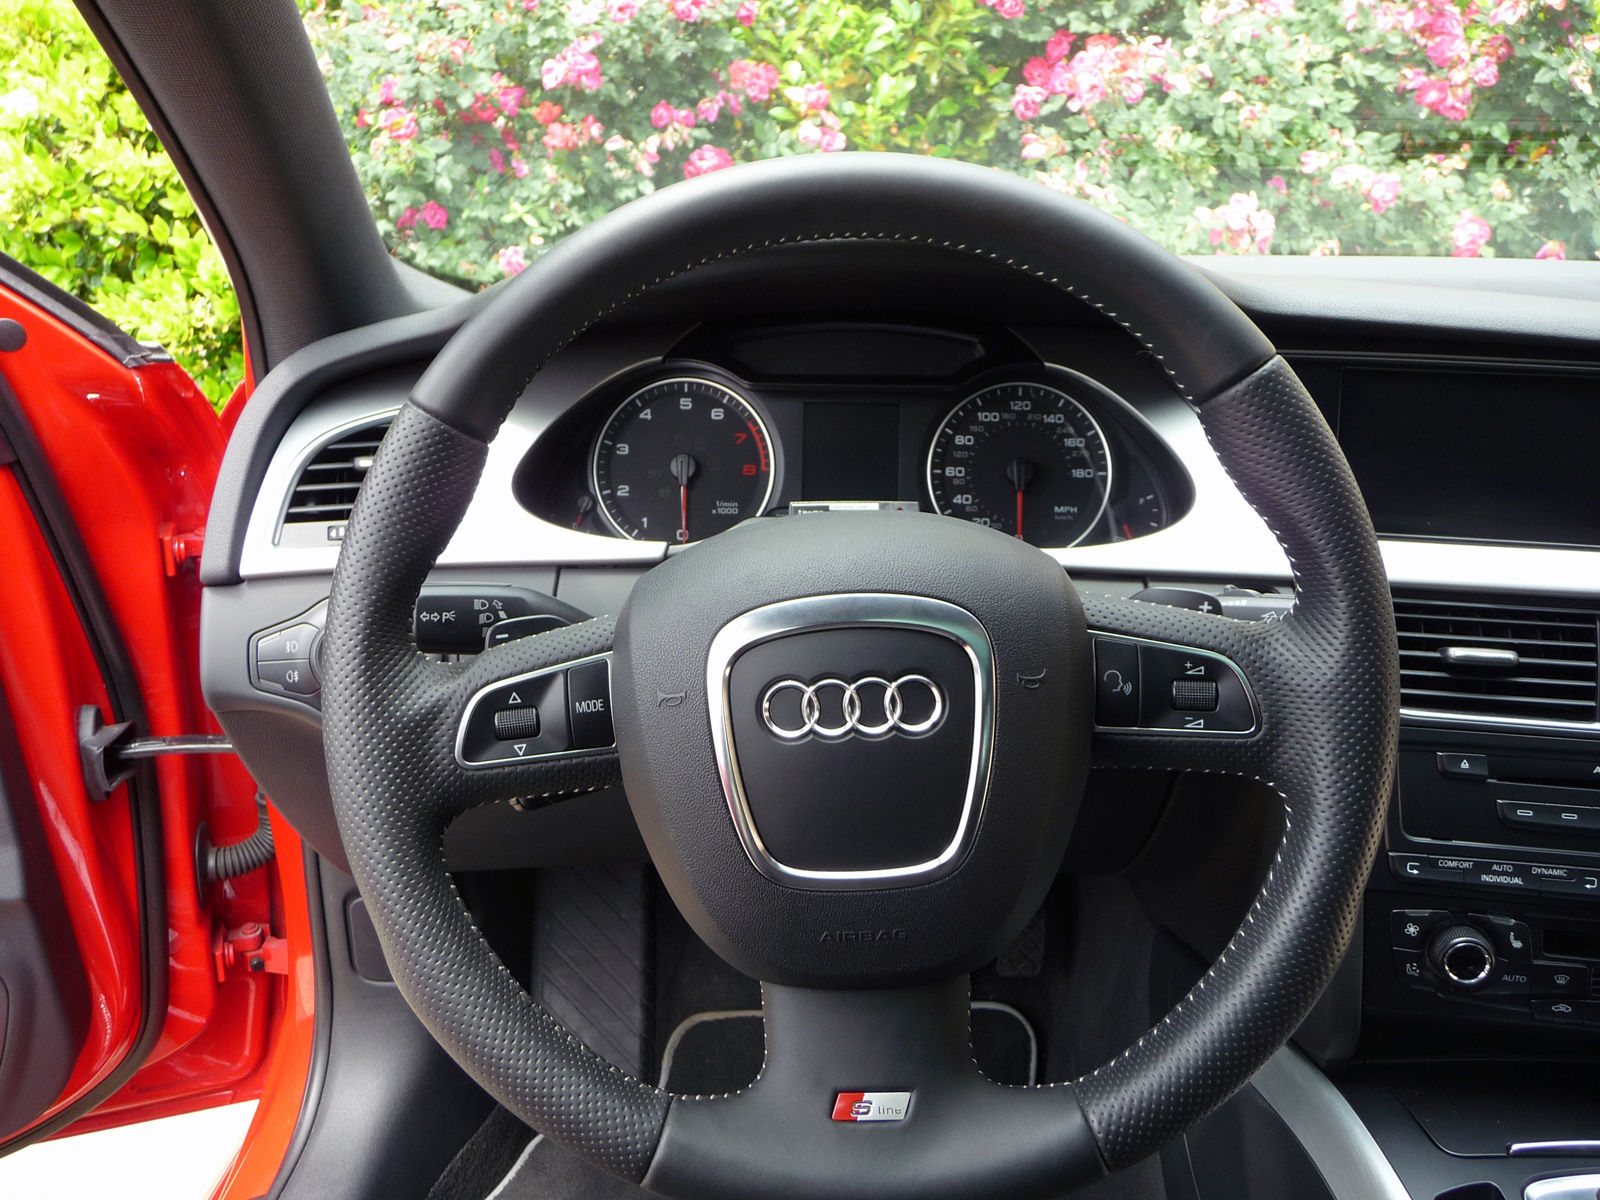 For Sale 2009 Audi A4 20t S Line Prestige Quattro Avant Fuse Box Matching Alcantara Insets With Matte Brushed Aluminum Trim And Both Front Rear Doors Have A Sill Plate Red Logo